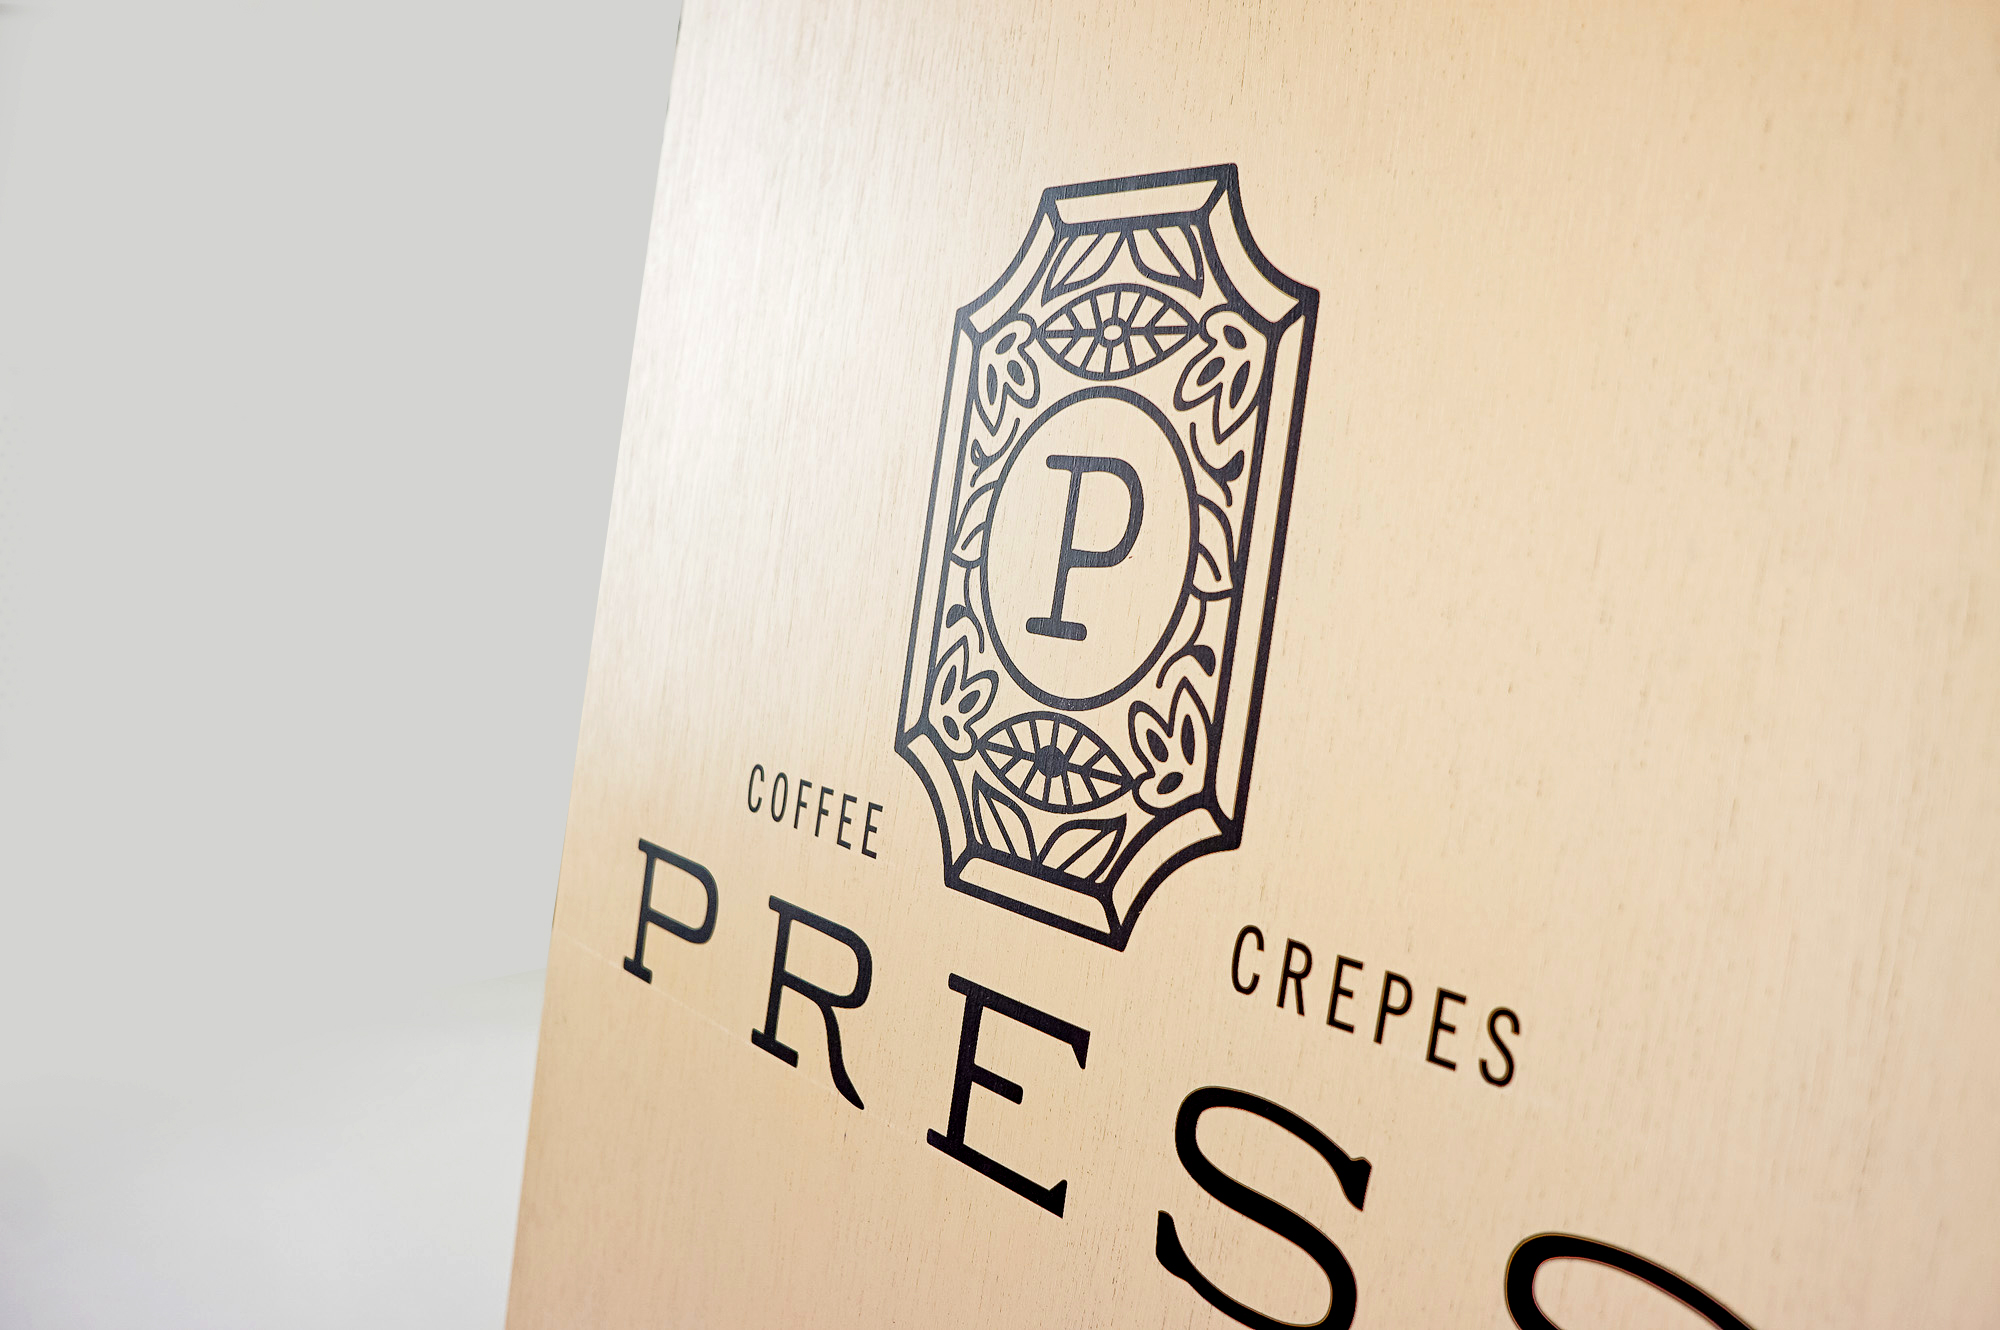 Light wood A-frame sidewalk sign with intricate black logo and text for Press, a European-Inspired coffeehouse and crêperie in downtown Graham, NC.